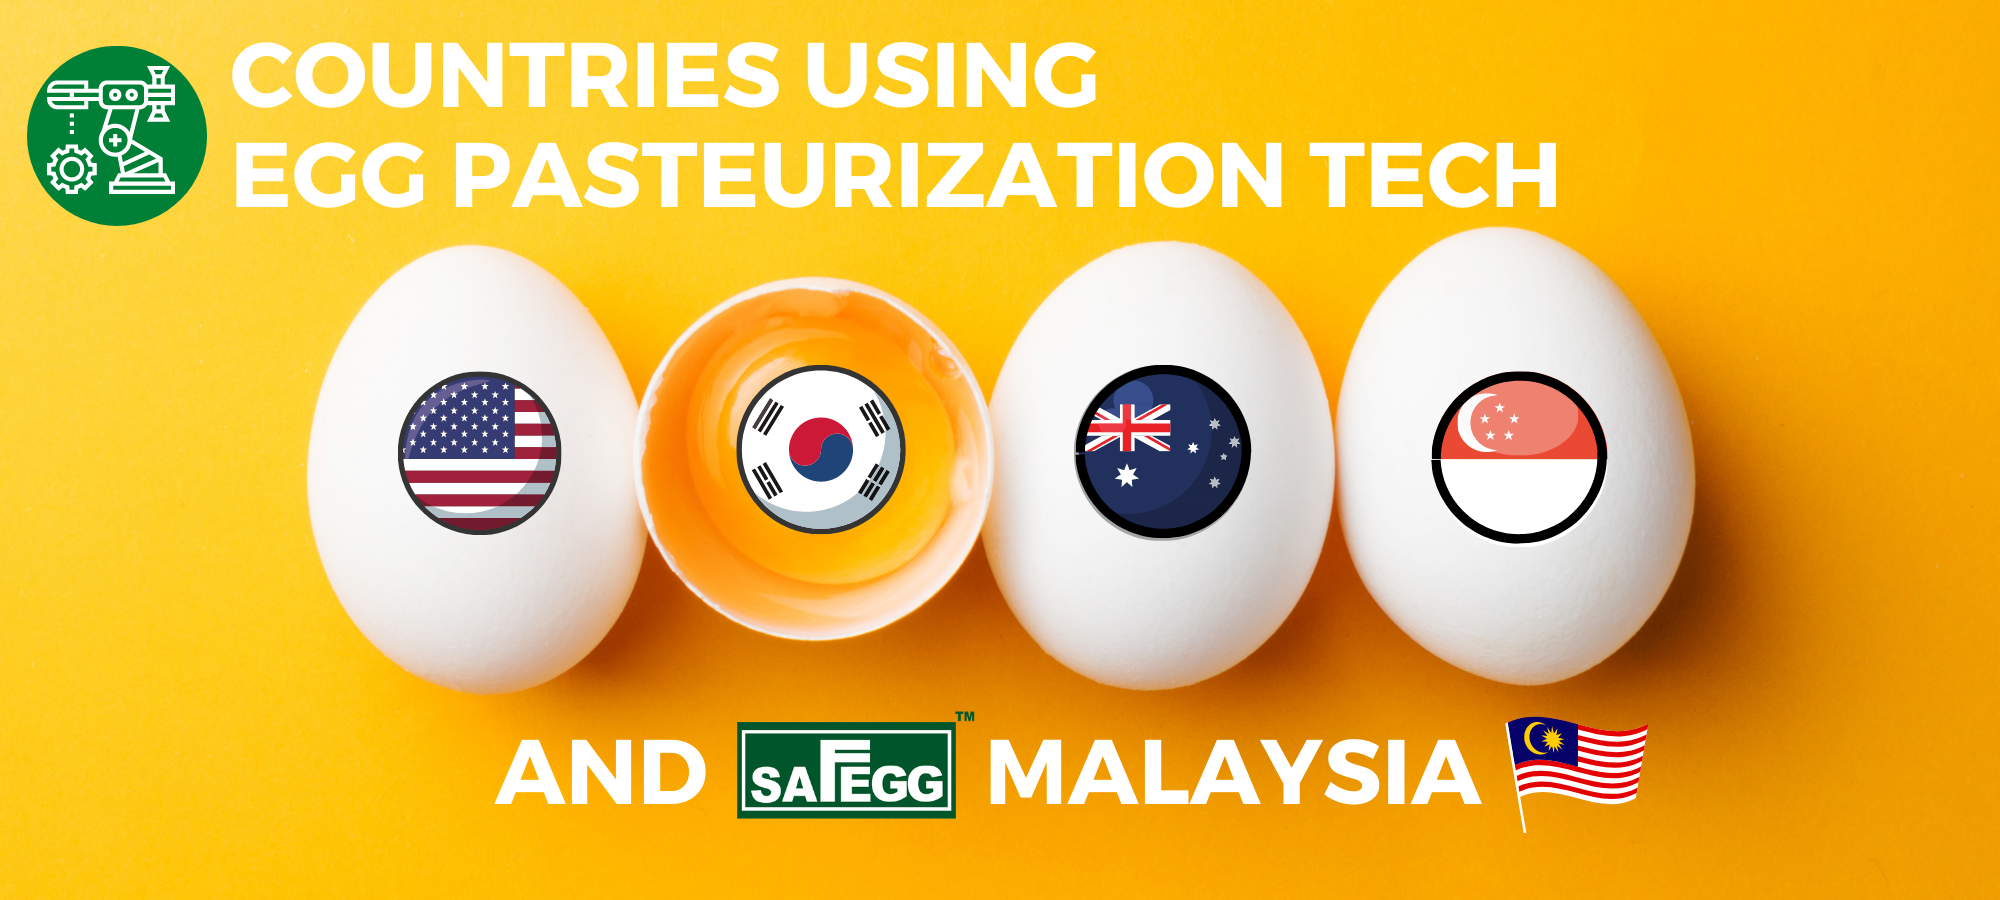 Countries Using Egg Pasteurization Technology